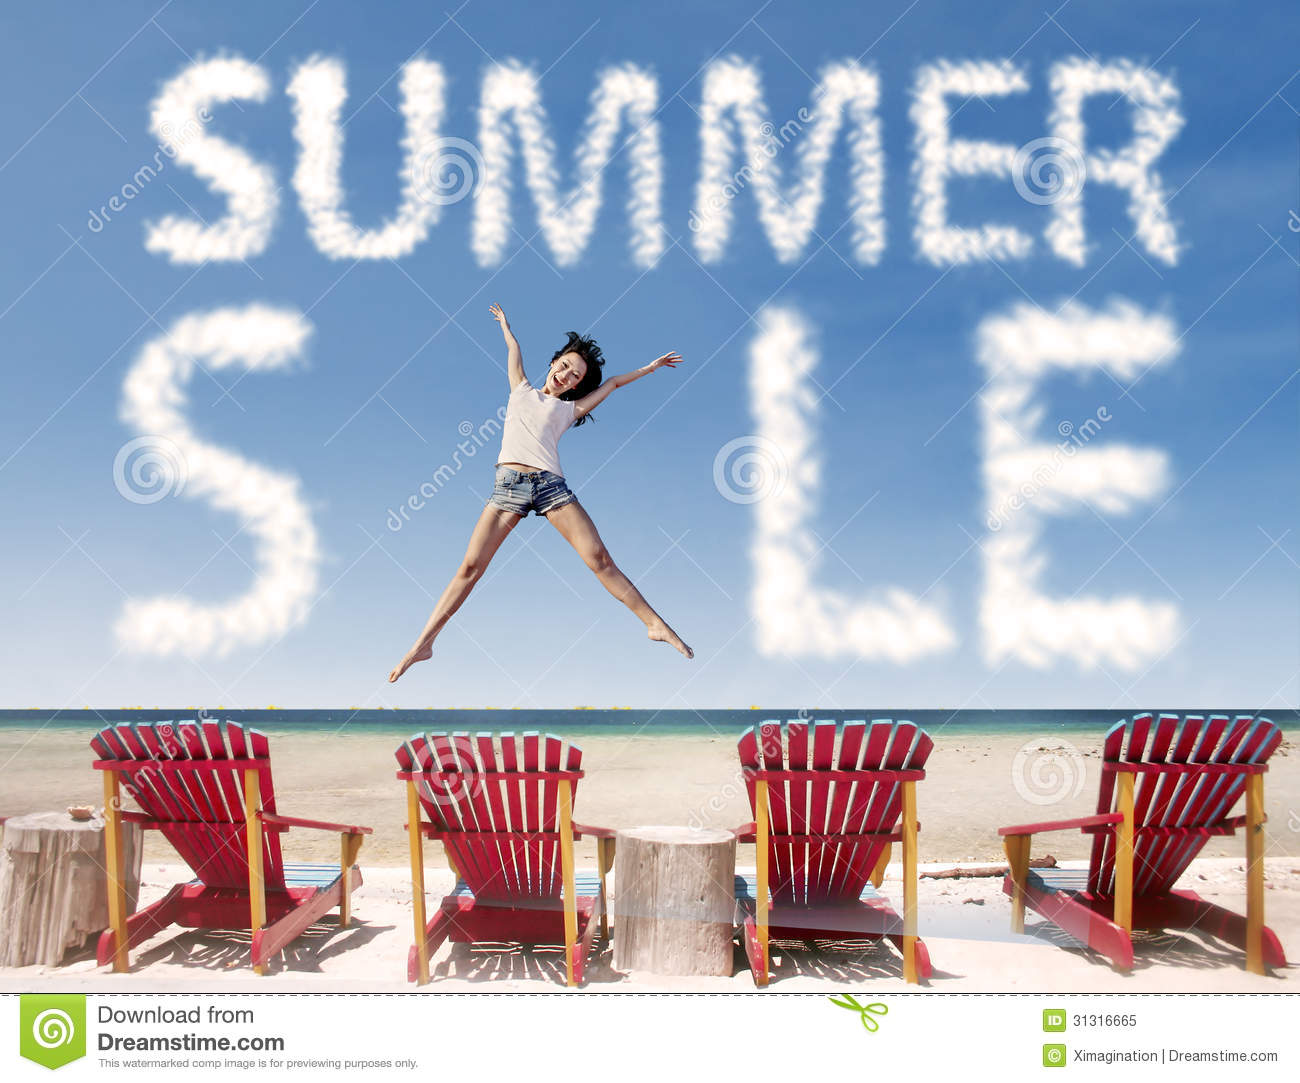 Where To Buy Beach Chairs Summer Sale Cloud With Girl Jumping Over Beach Chairs Stock Image